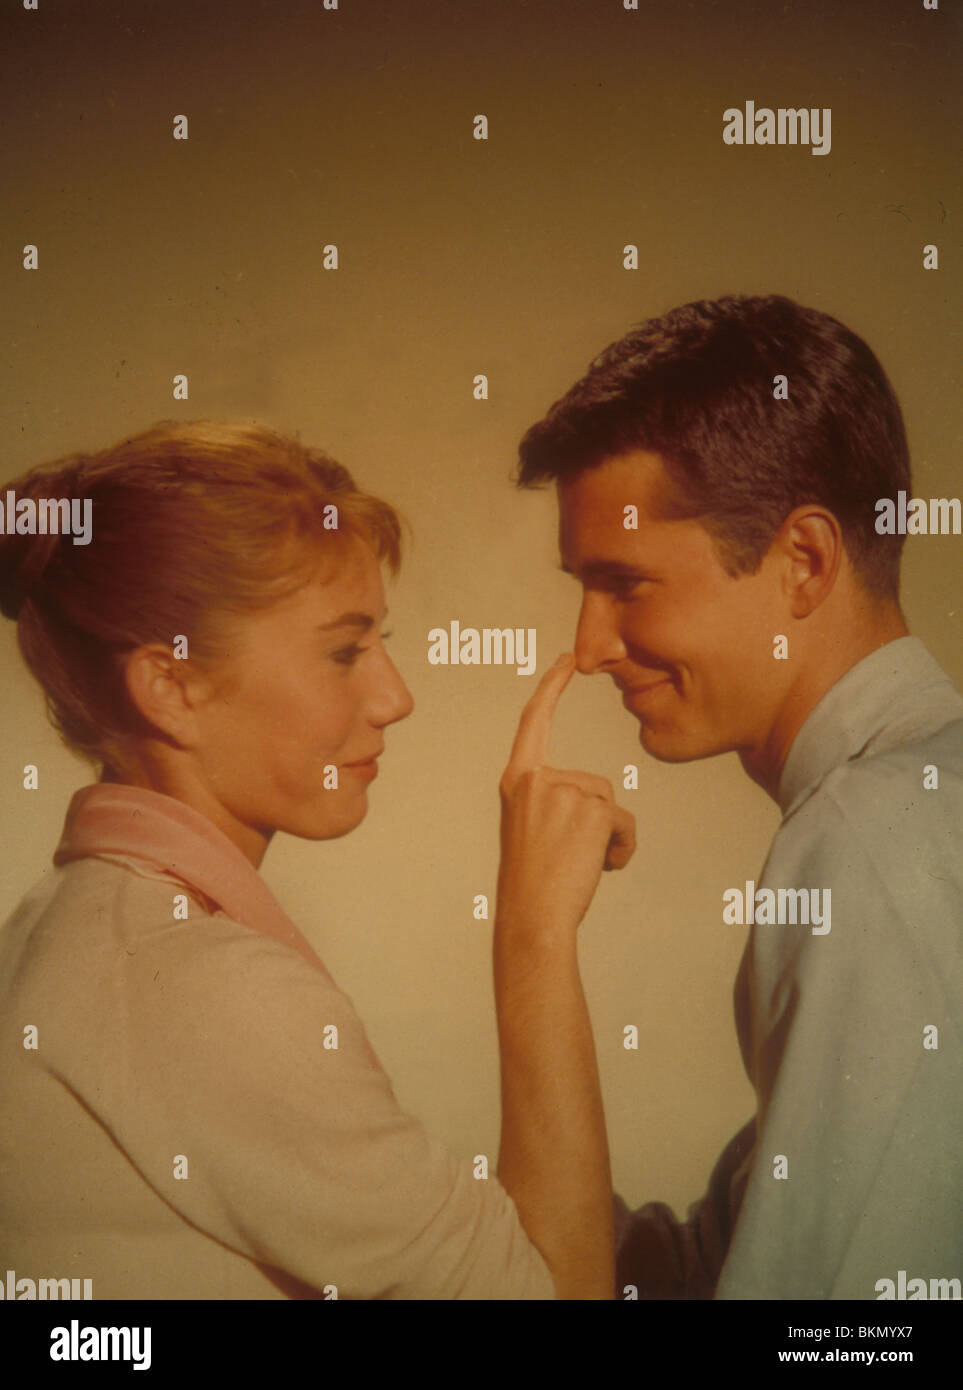 ON THE BEACH (1959) DONNA ANDERSON, ANTHONY PERKINS OTBH 008 - Stock Image